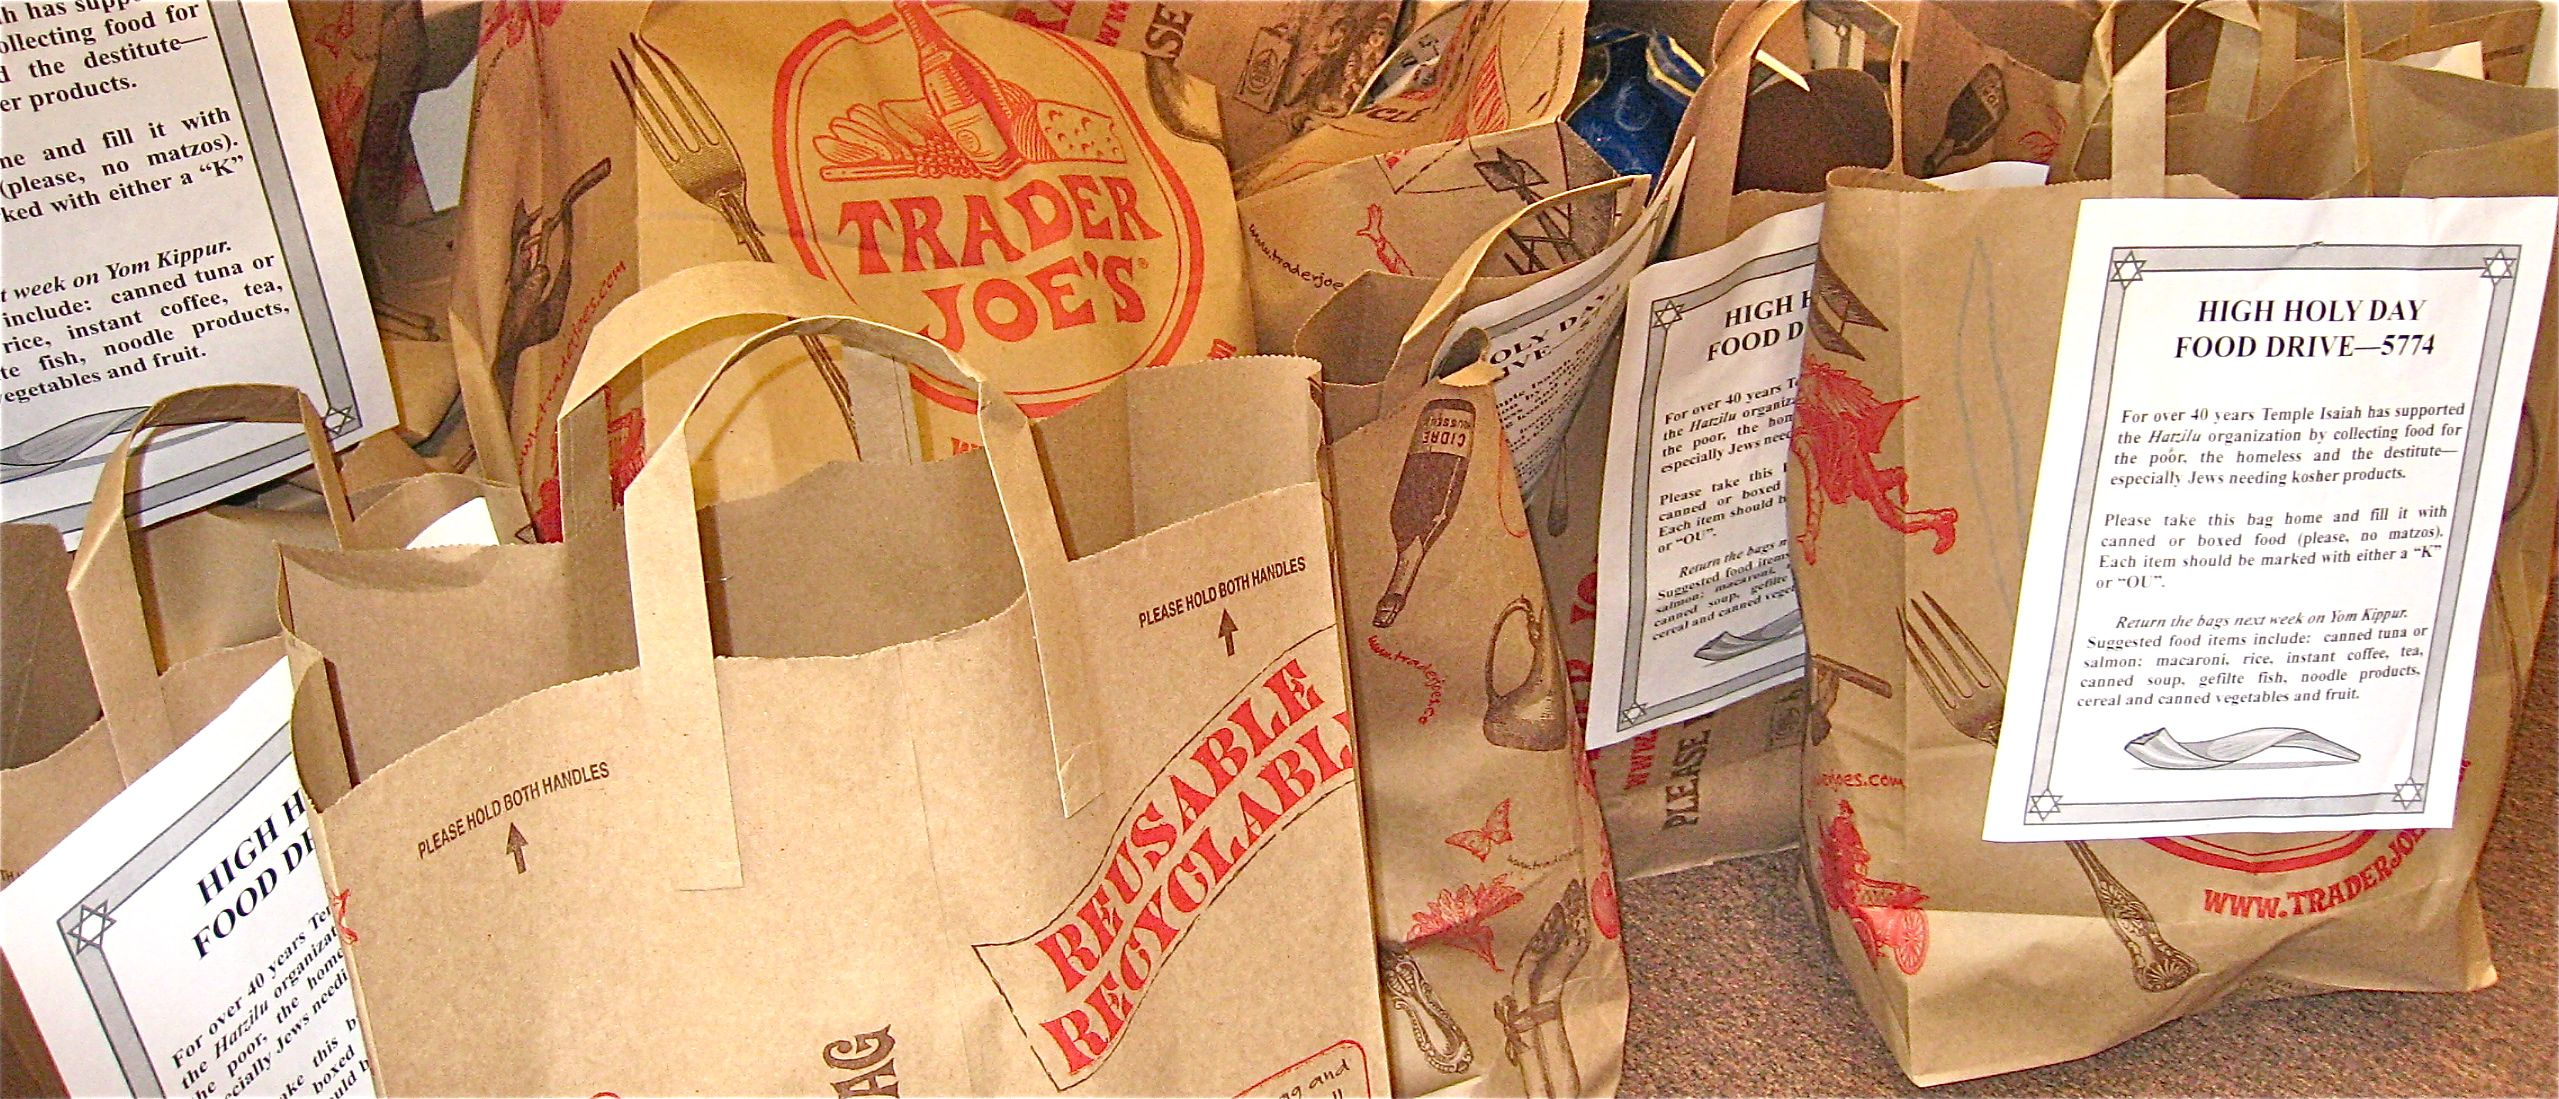 Temple Isaiah's Yom Kippur food collection for Hatzilu